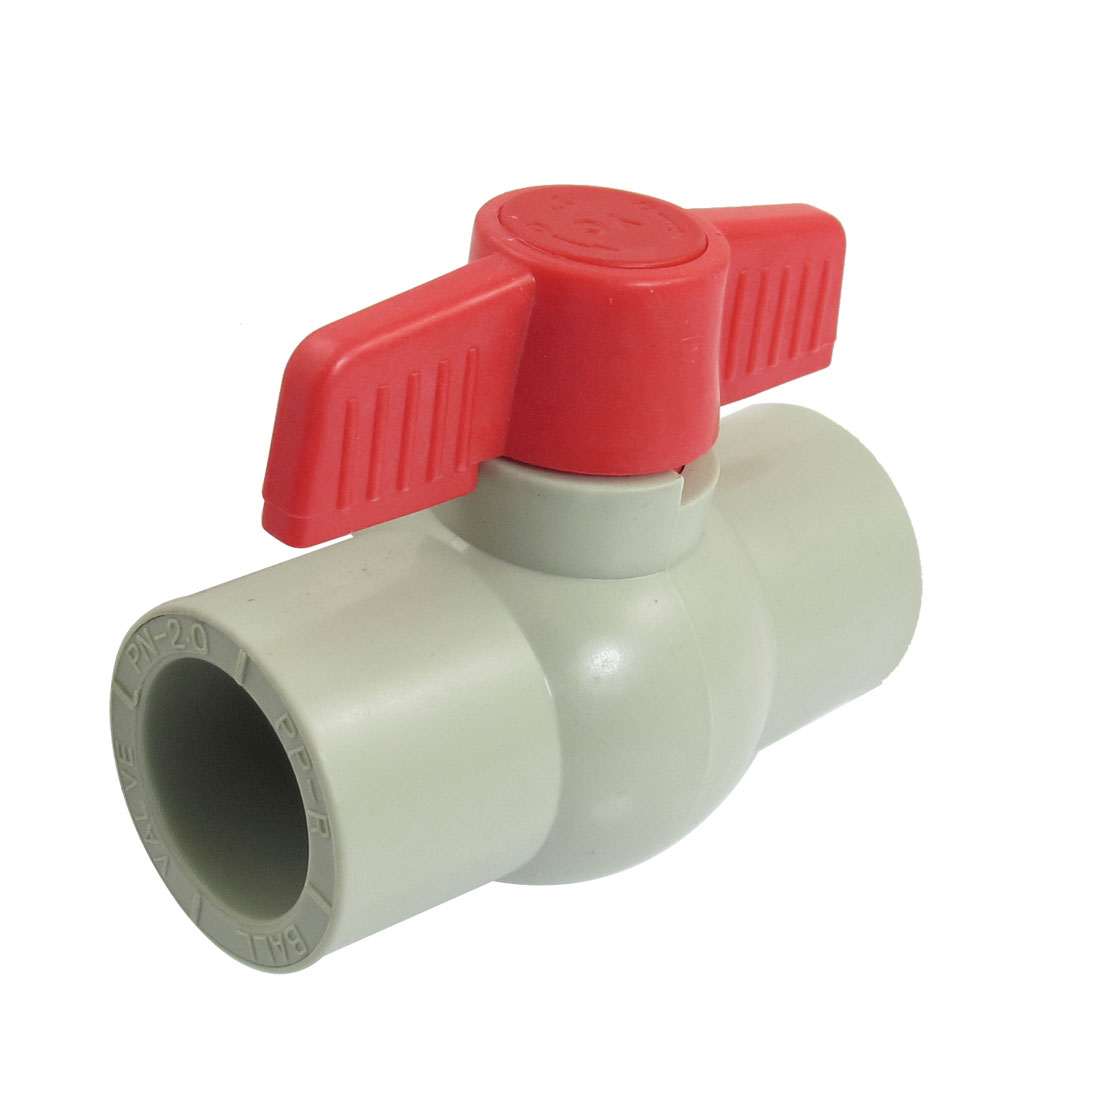 31mm x 31mm Slip Red T Knob Plumbing PPR Ball Valve Gray